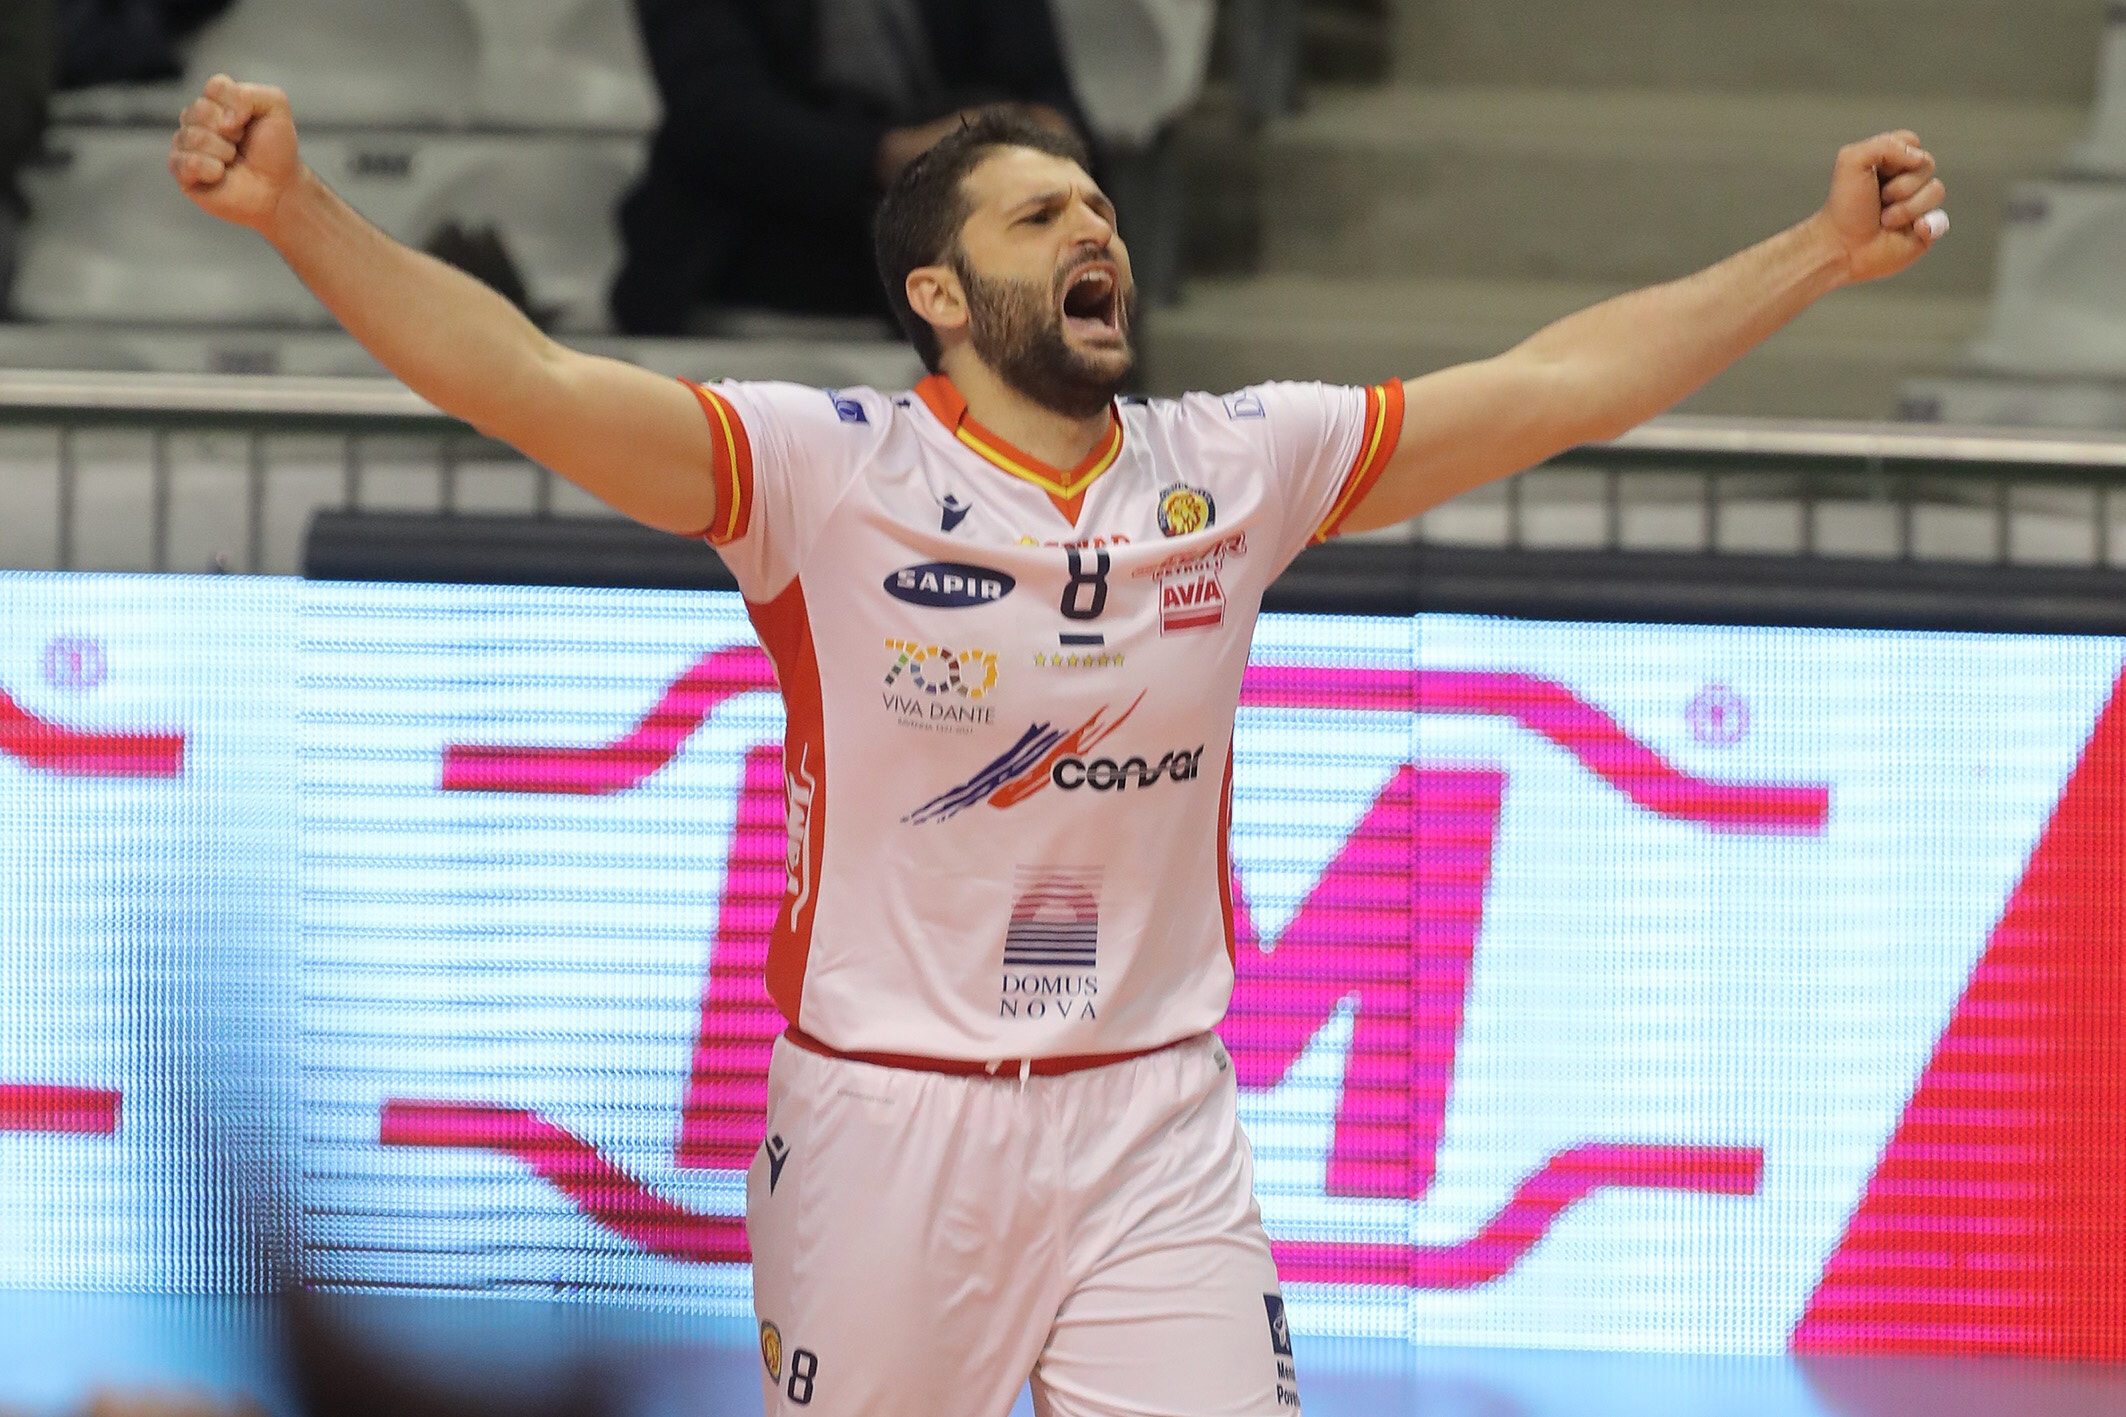 Italy: home victory of Ravenna vs. Sora in the advance of Round 15